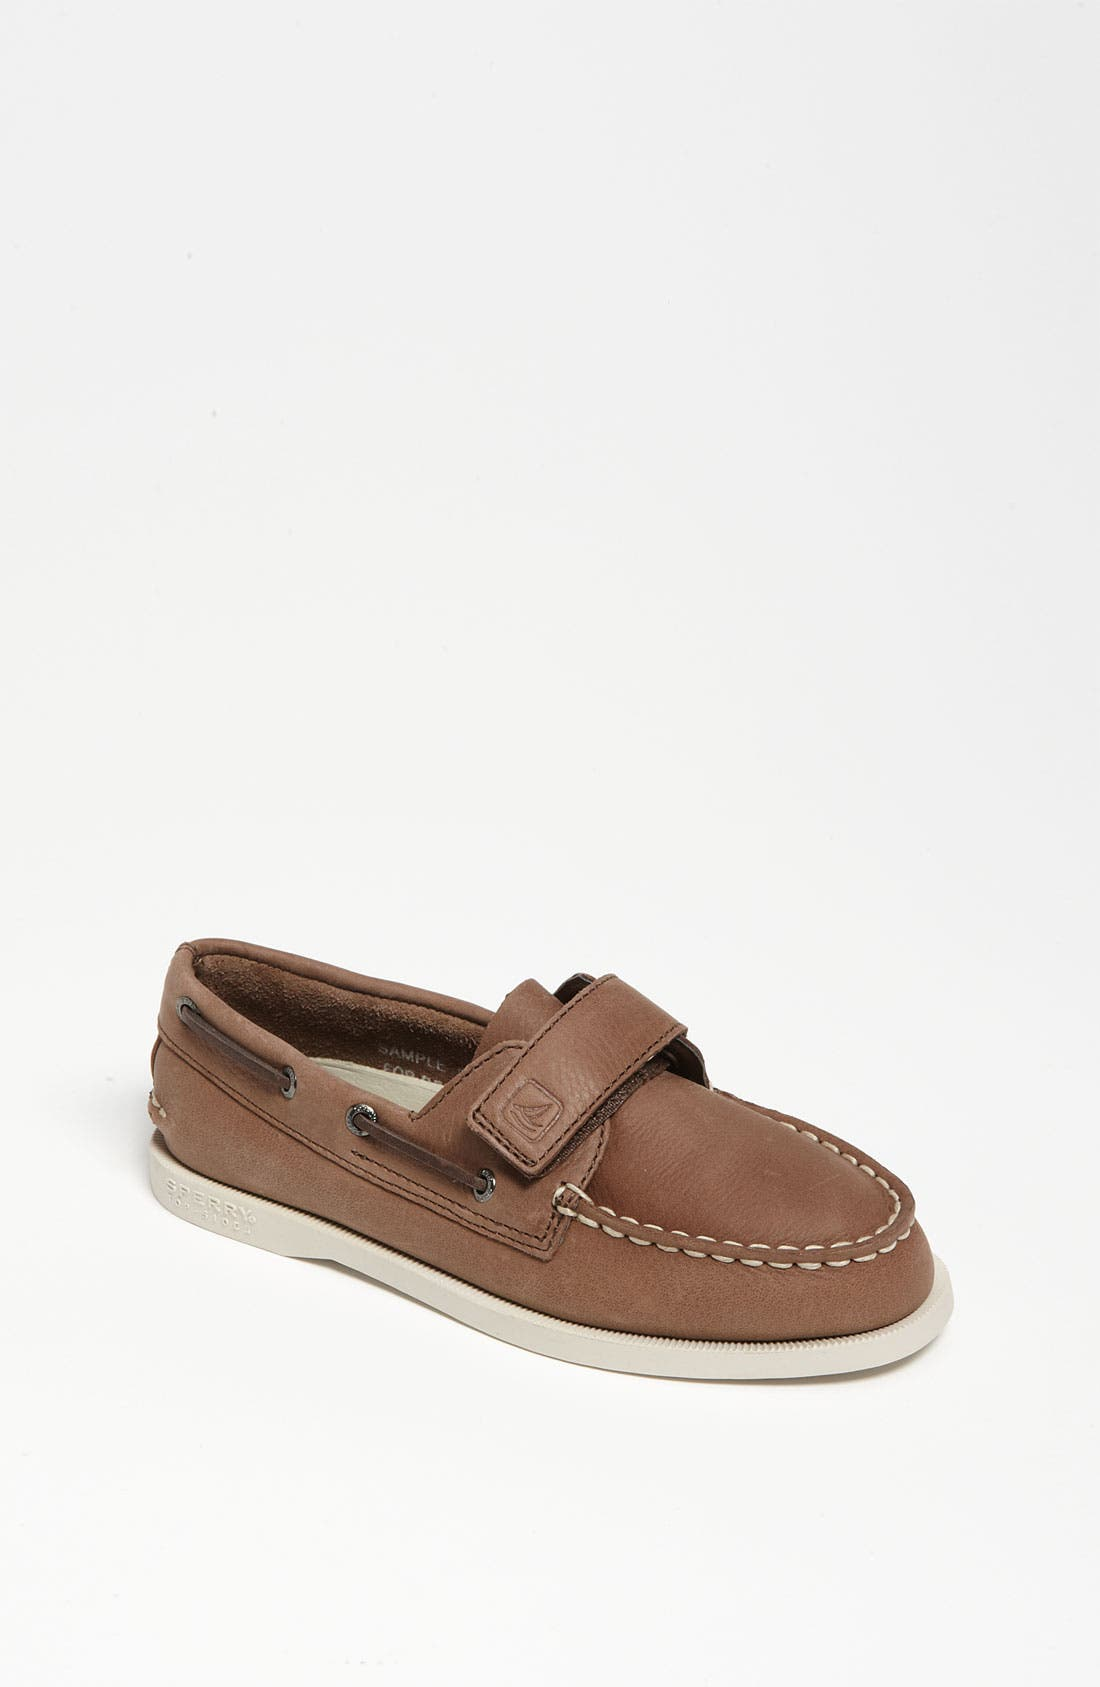 Alternate Image 1 Selected - Sperry Top-Sider® Kids 'Authentic Original' Boat Shoe (Walker & Toddler)